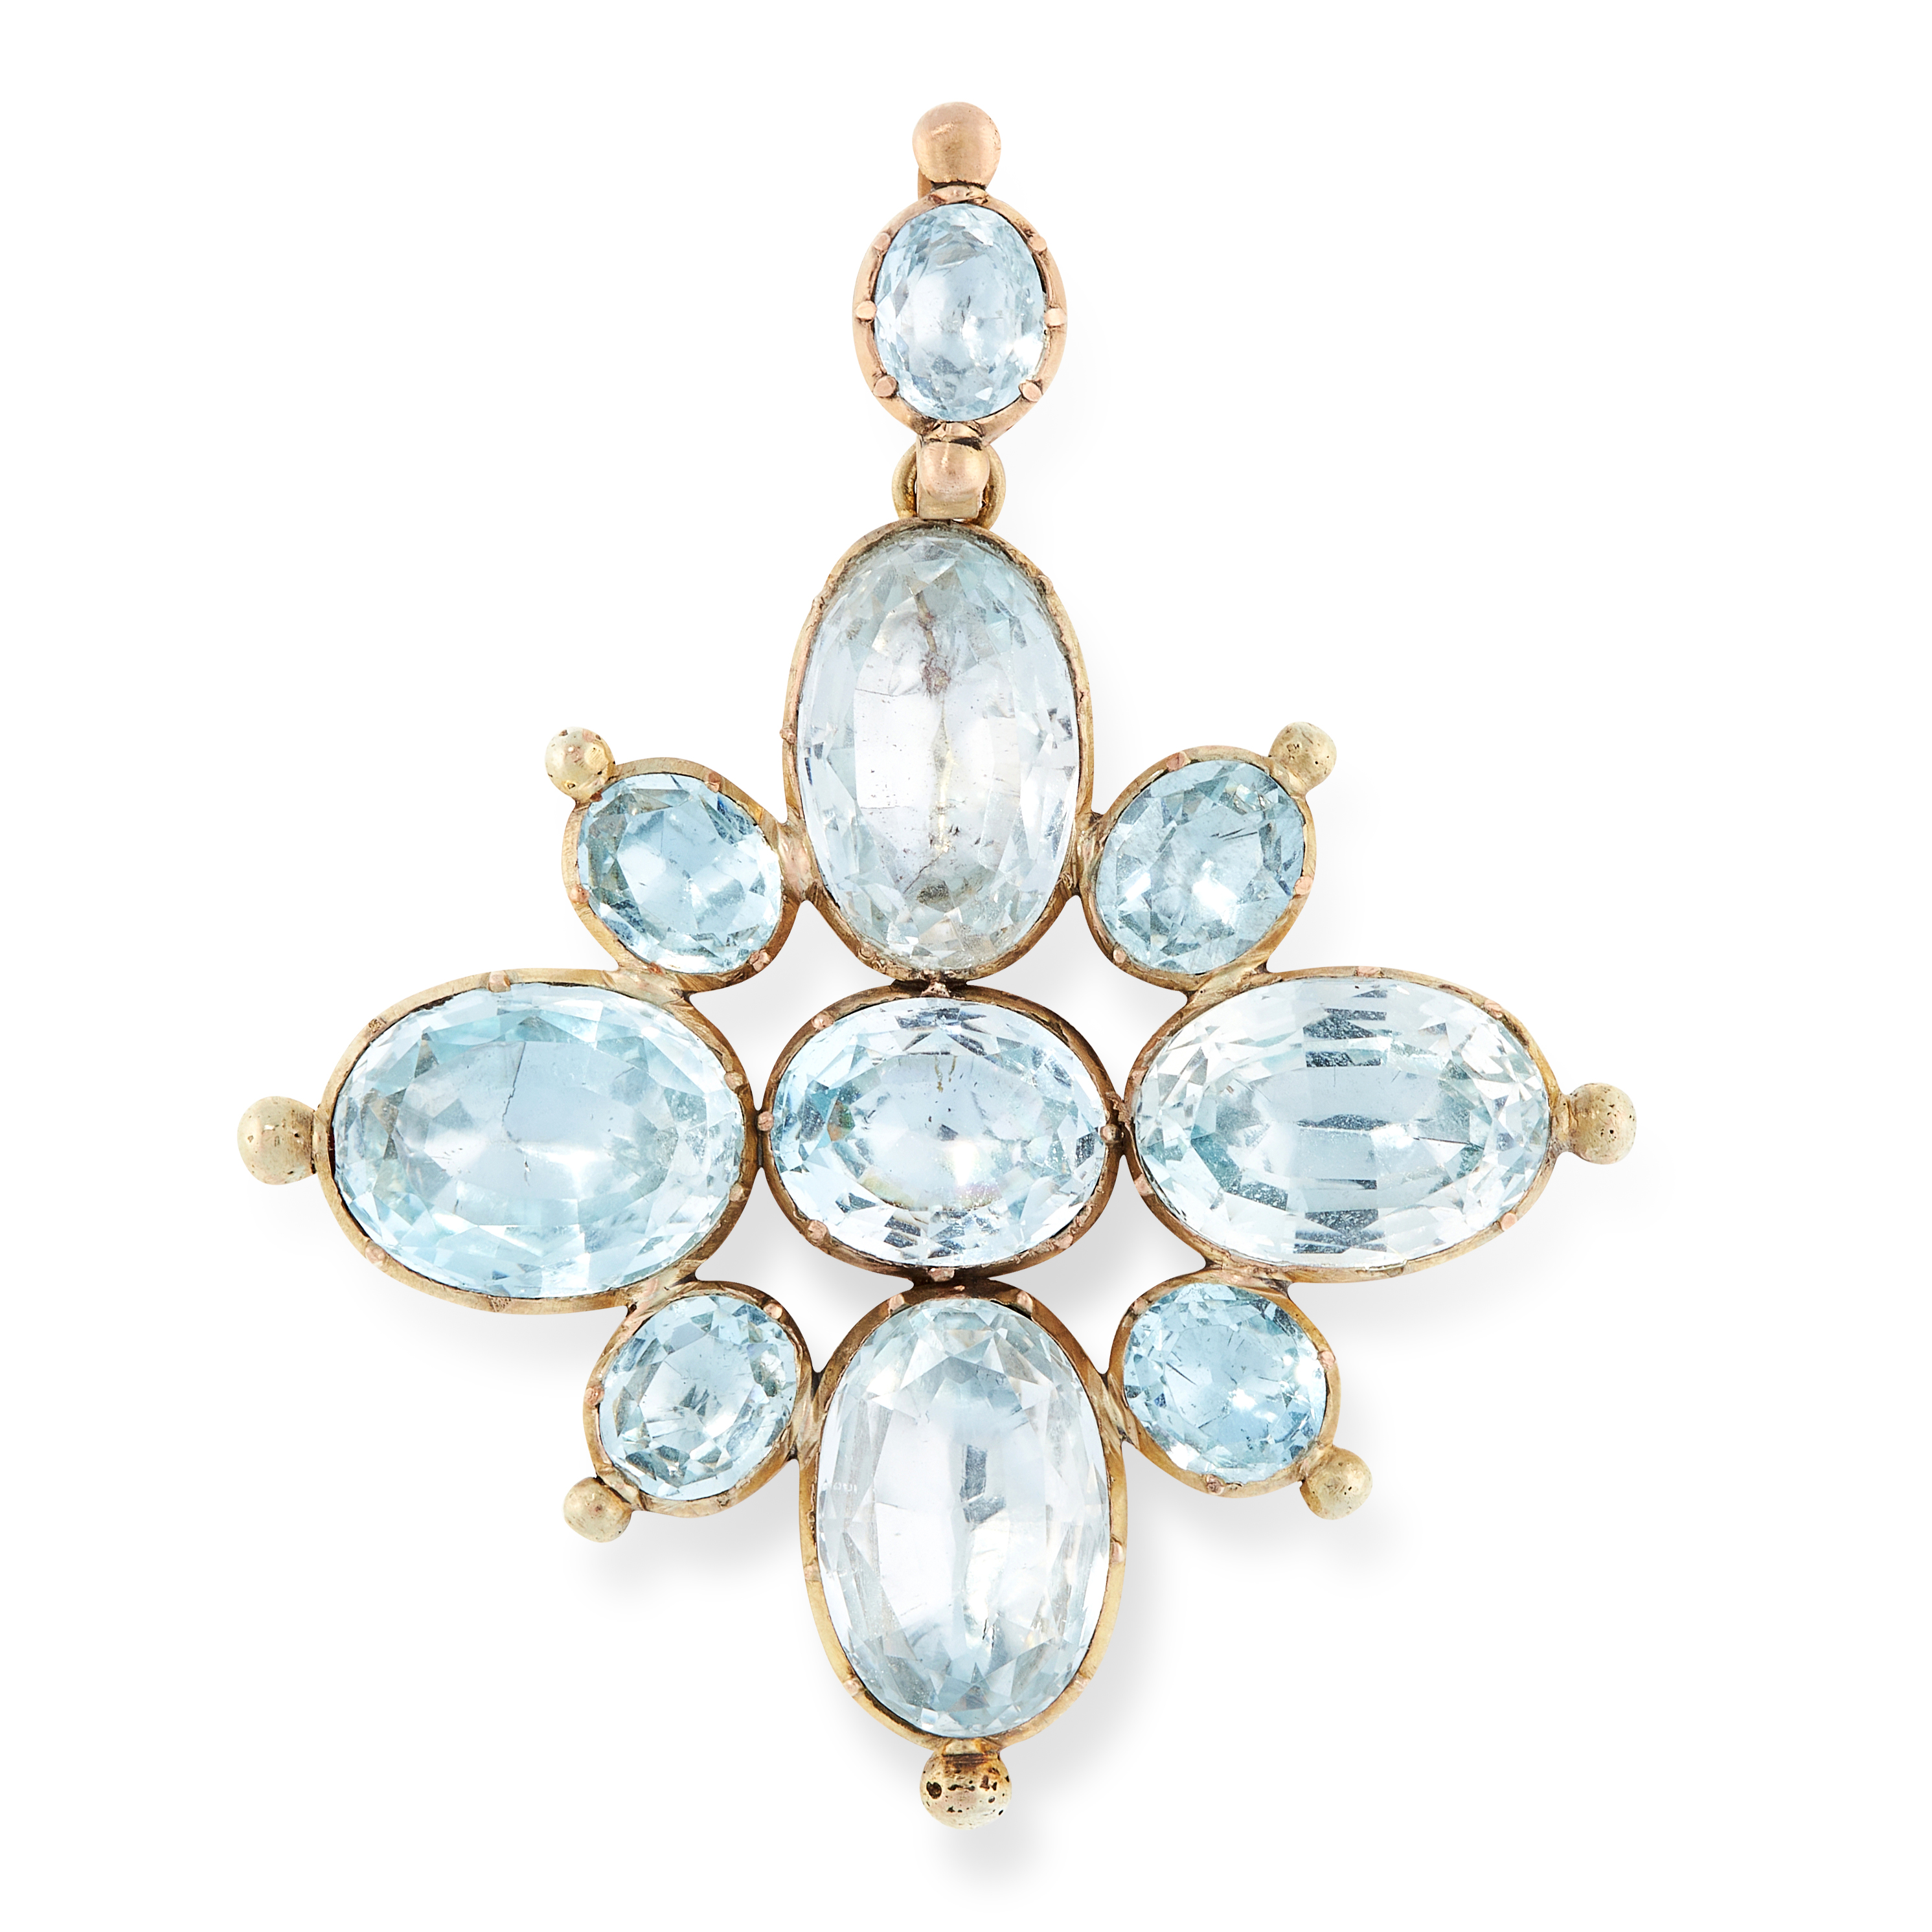 AN ANTIQUE AQUAMARINE CROSS PENDANT, EARLY 19TH CENTURY in yellow gold, designed as a cross, the